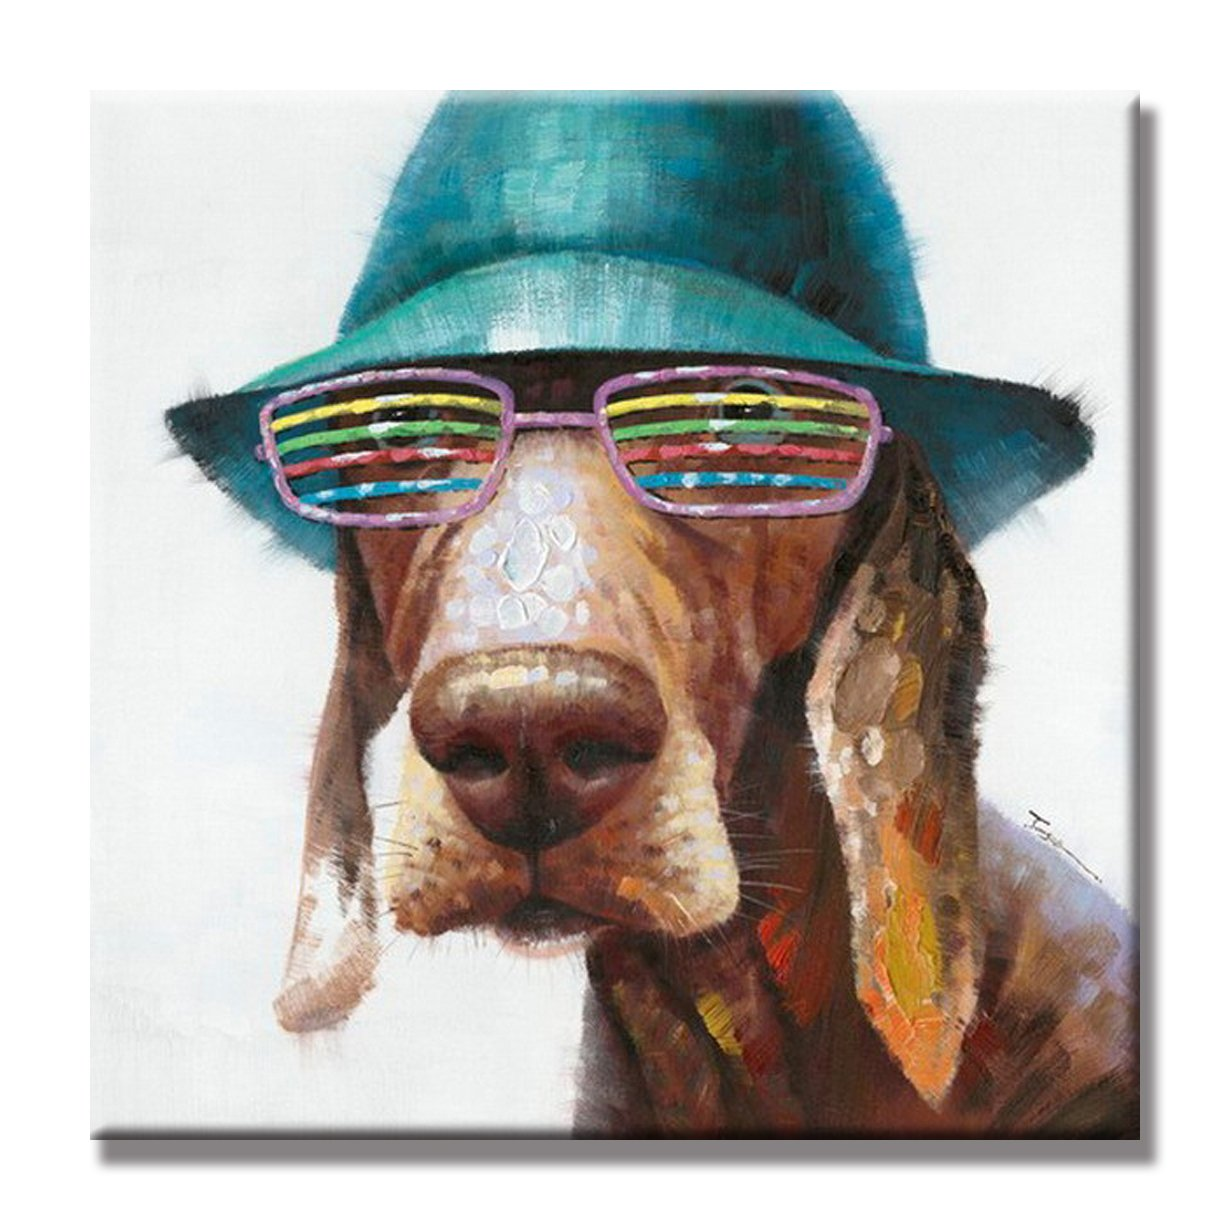 SEVEN WALL ARTS - 100% Hand Painted Oil Painting Animal Cute Dog Wears Colorful Glasses with Stretched Frame 32 x 32 Inch